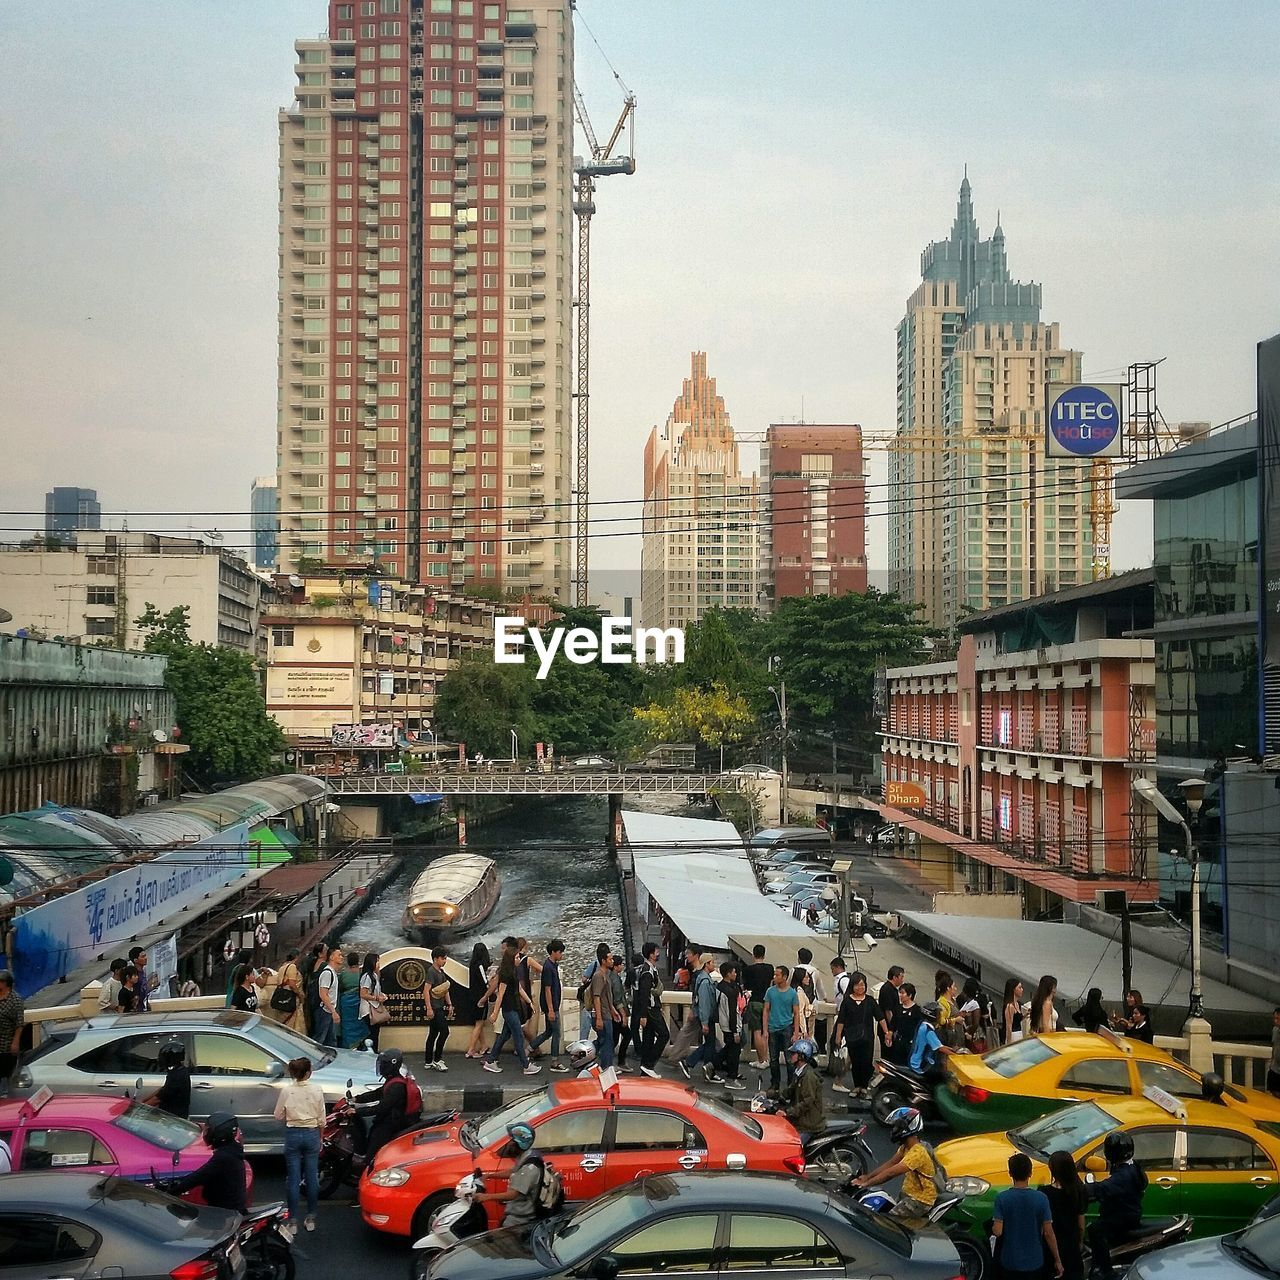 architecture, building exterior, built structure, city, transportation, large group of people, land vehicle, real people, city life, mode of transport, car, skyscraper, day, outdoors, men, cityscape, sky, women, modern, crowd, people